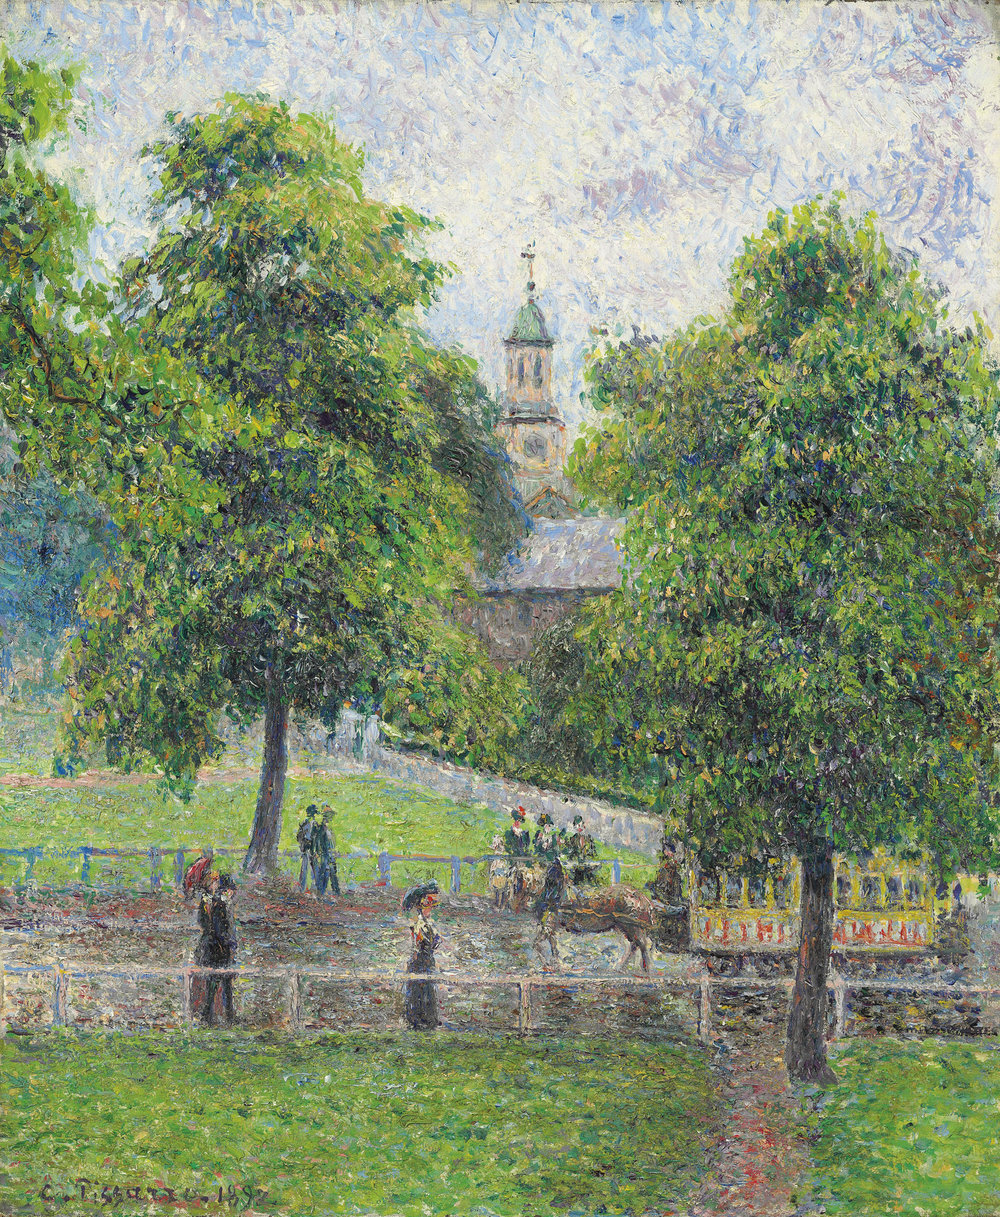 Camille Pissarro, Saint Anne's Church at Kew - 1892